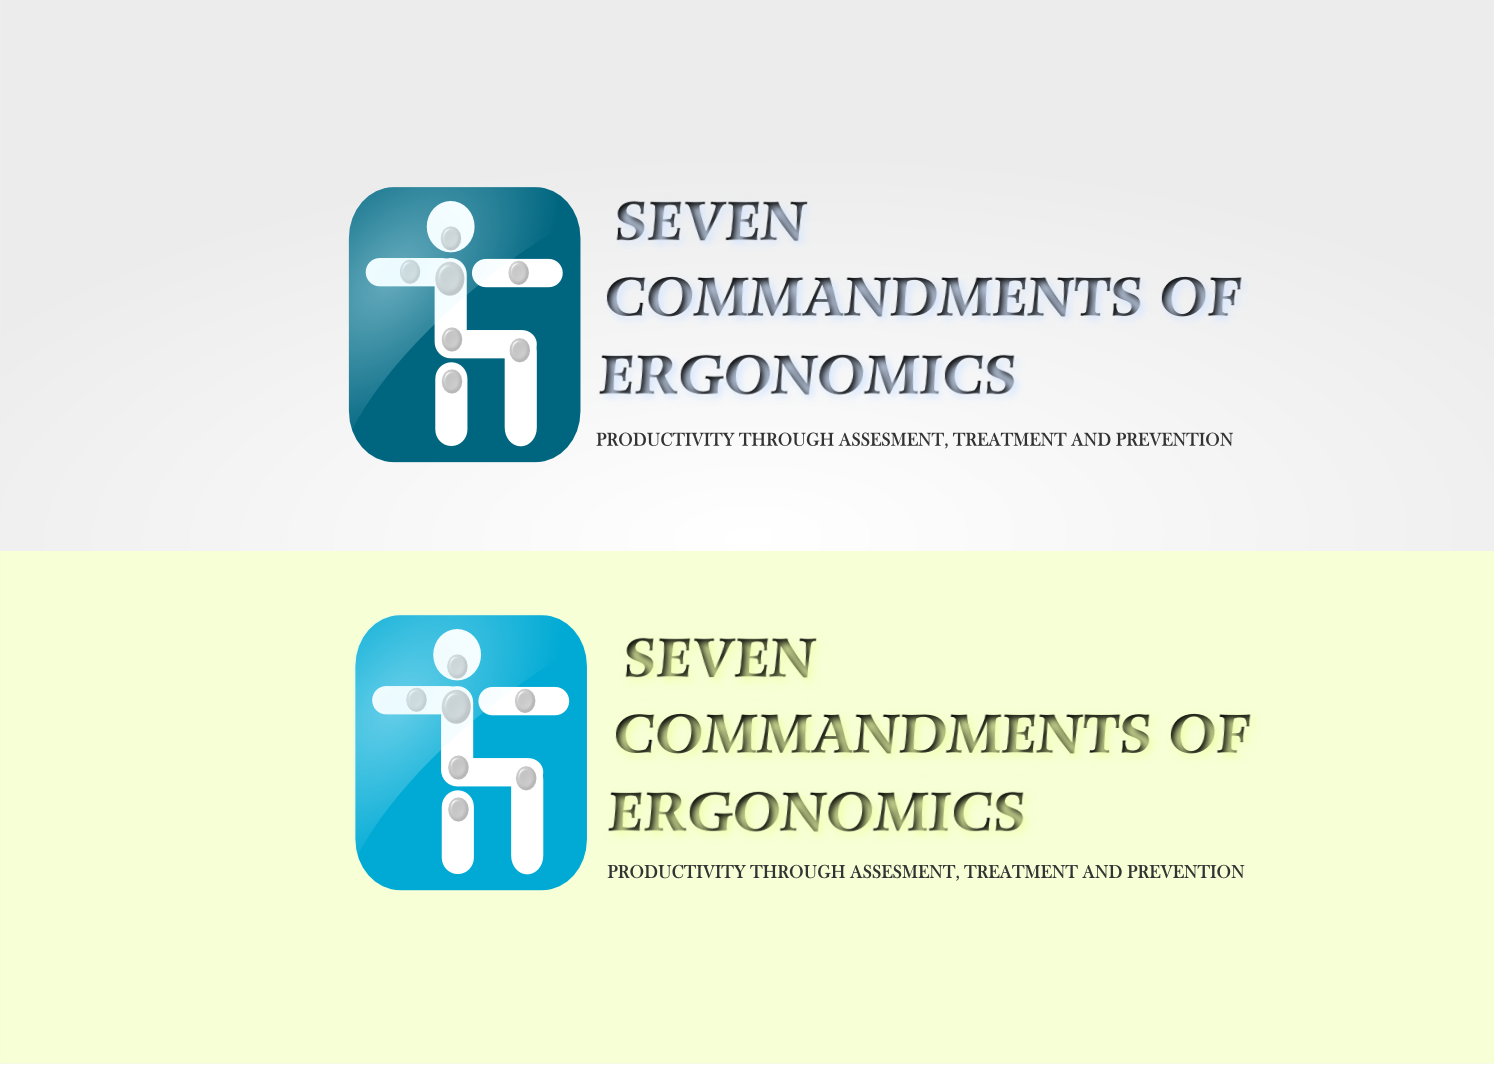 Logo Design by Joseph calunsag Cagaanan - Entry No. 131 in the Logo Design Contest Logo Design for Seven Commandments of Ergonomics.